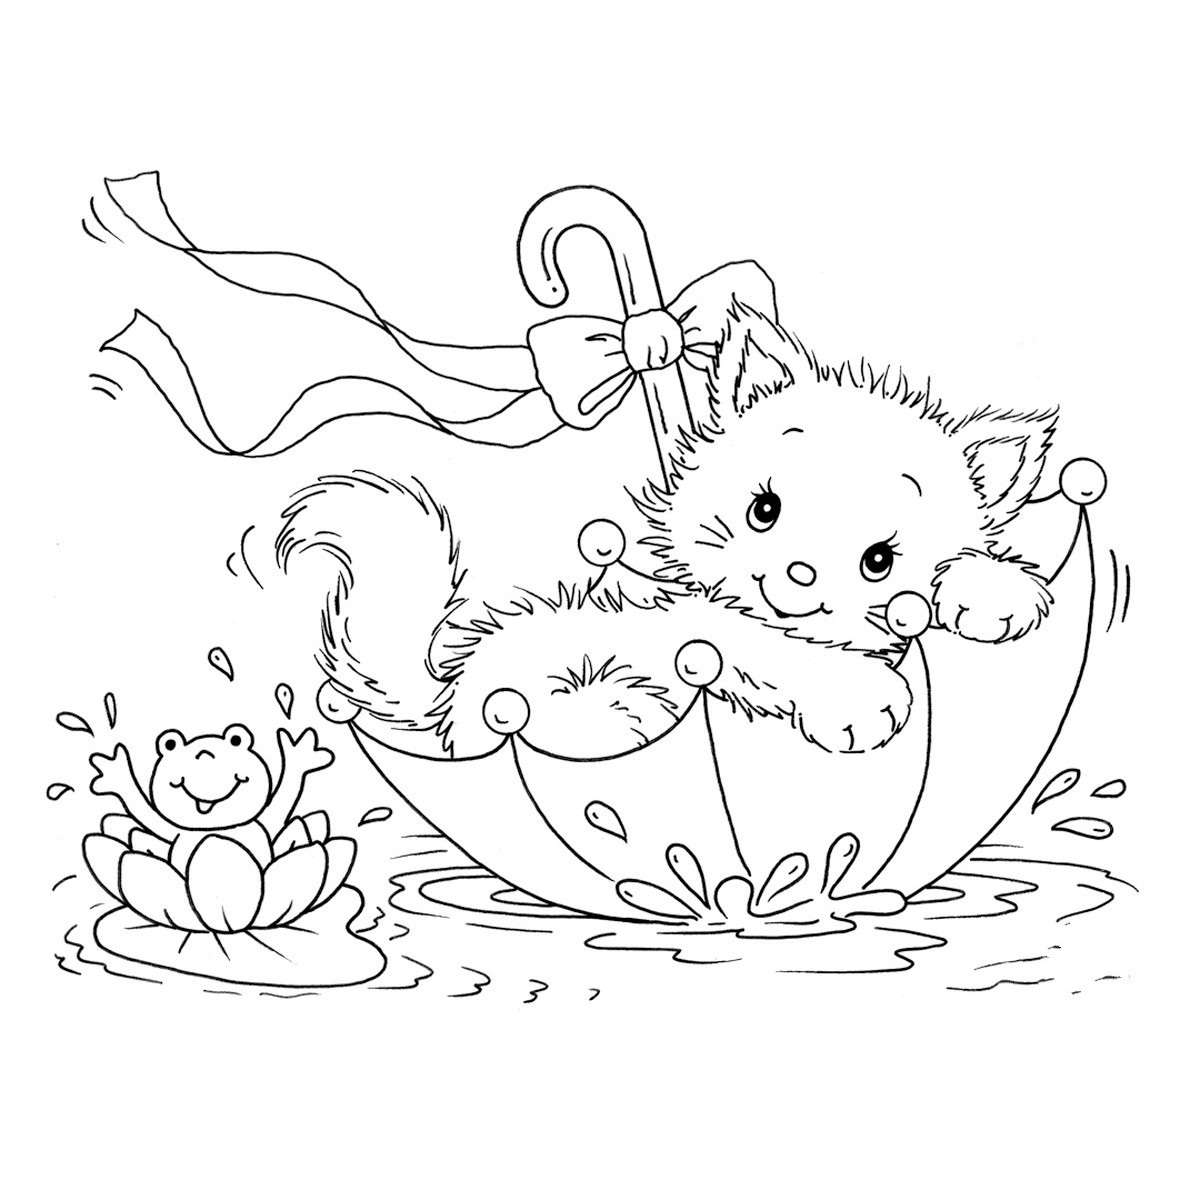 cat printable free printable cat coloring pages for kids printable cat 1 2